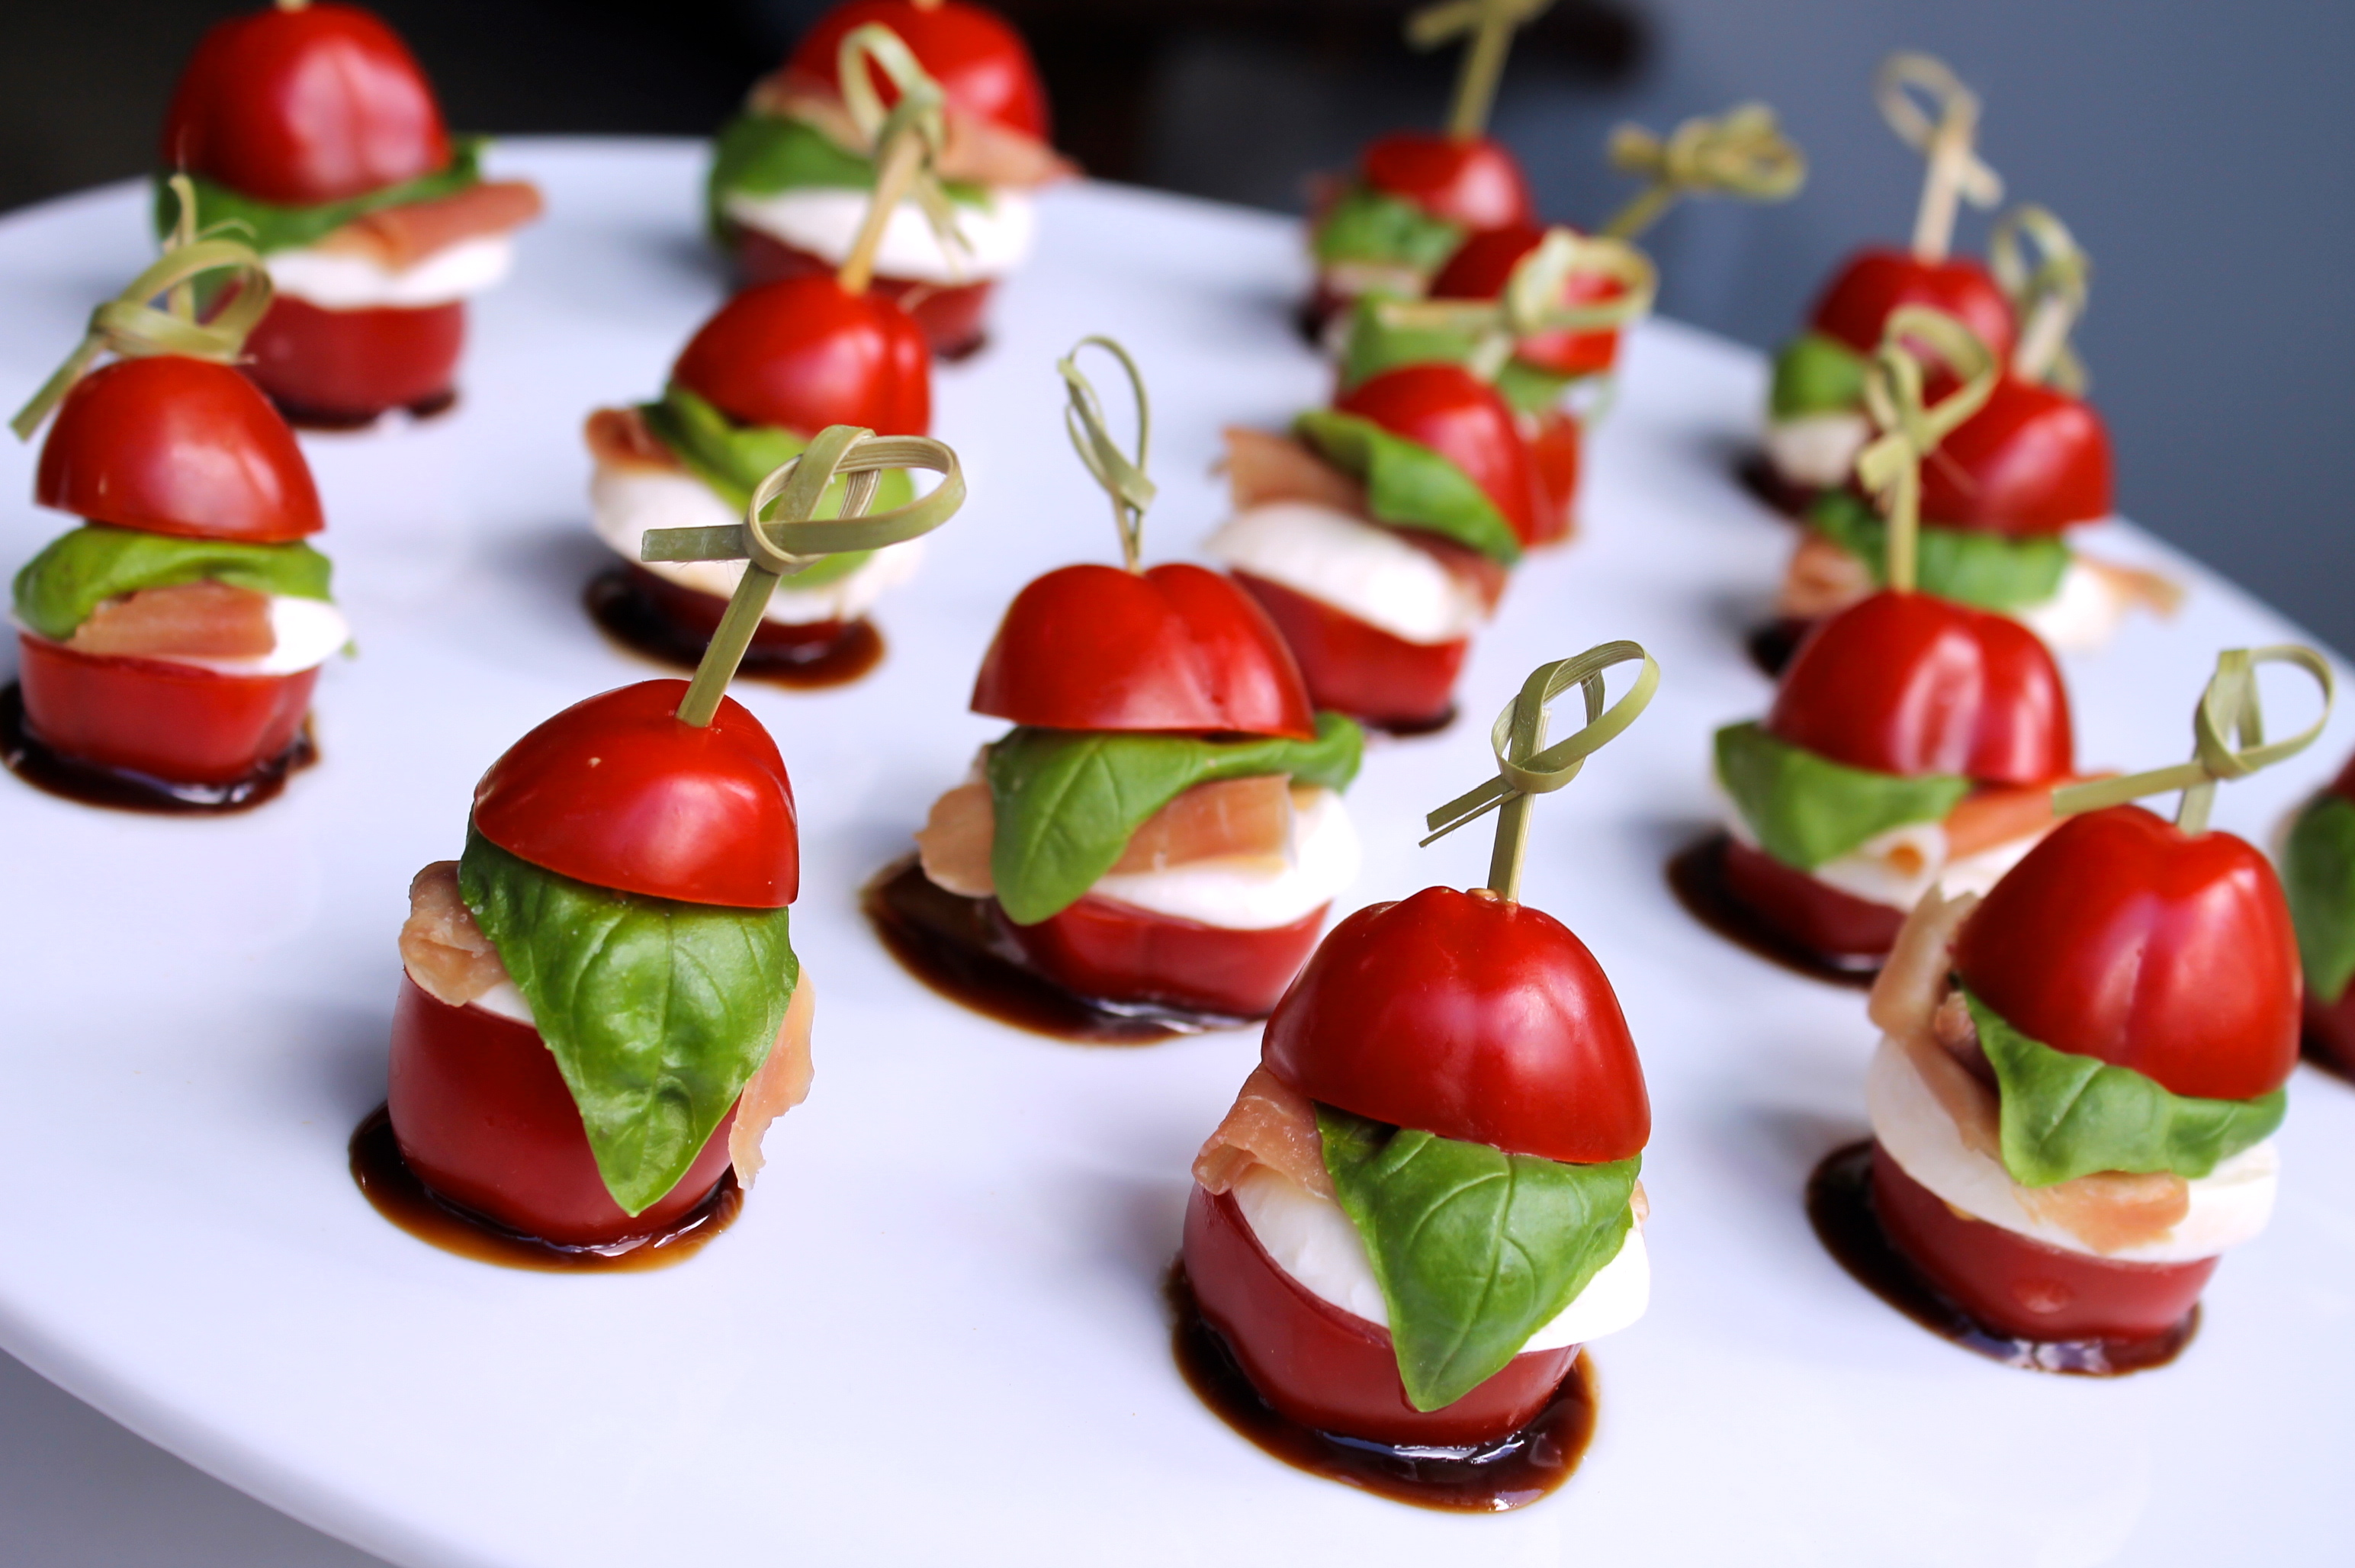 Christmas canap s santap s for Canape menu ideas